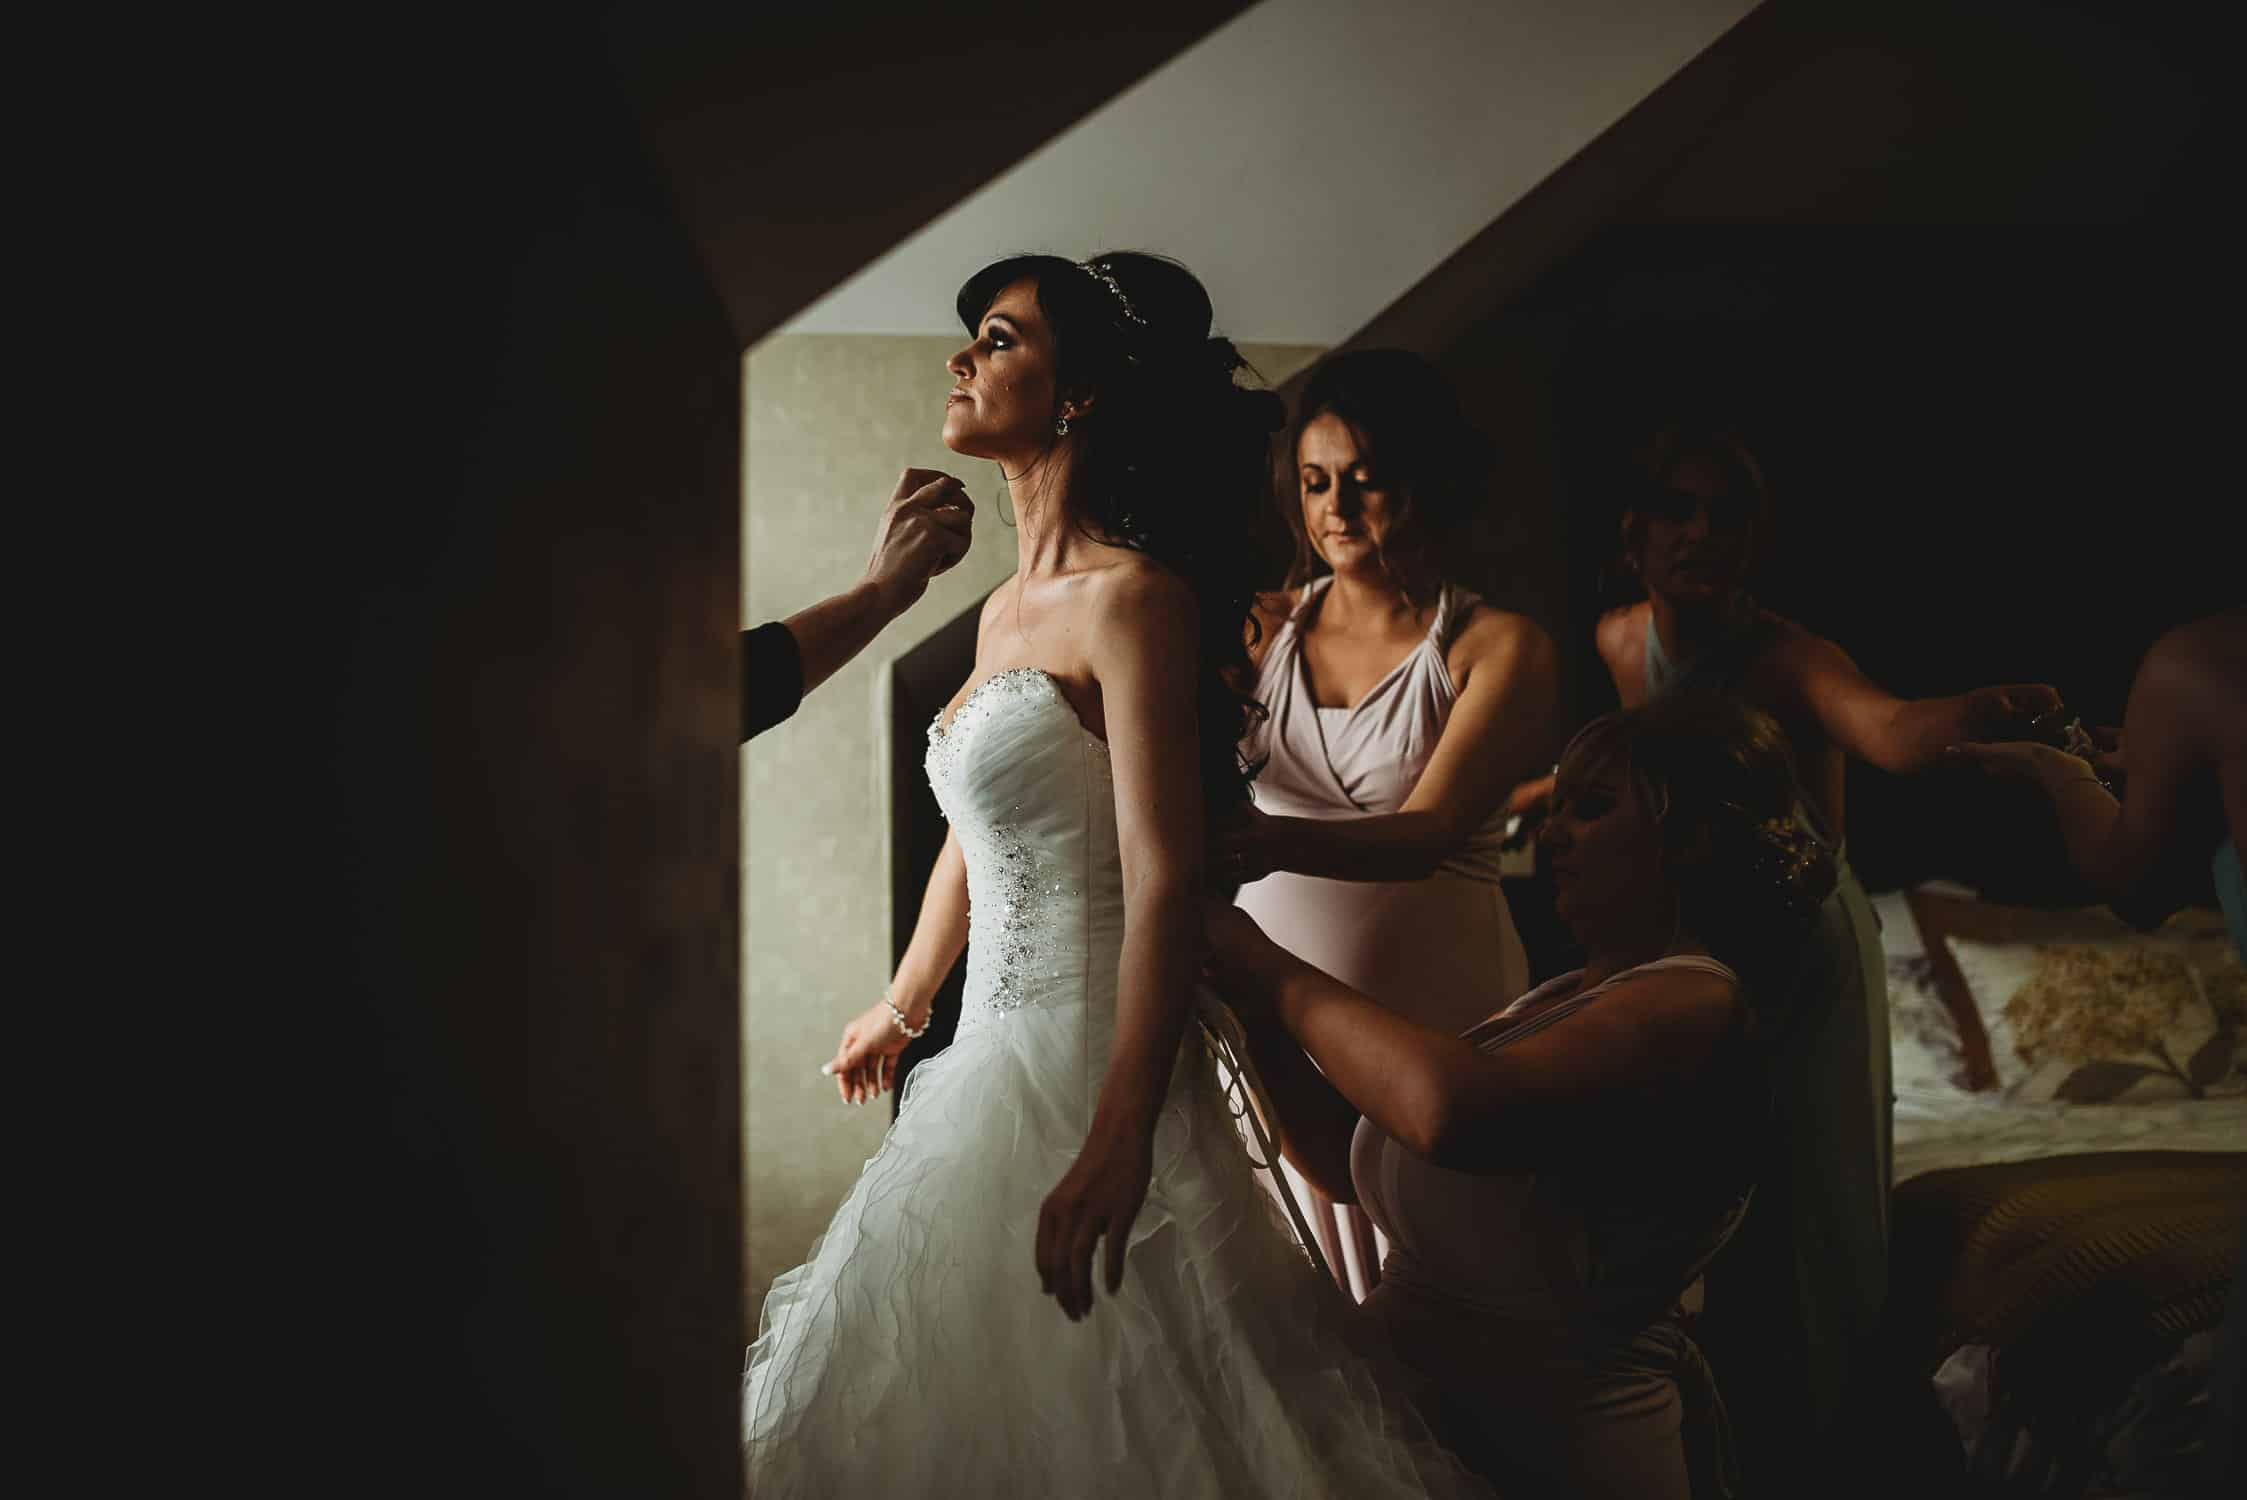 brides being helped into her dress by her bridesmaids while being sprayed with perfume at The Quay Hotel Wedding Photographer in Conwy North Wales